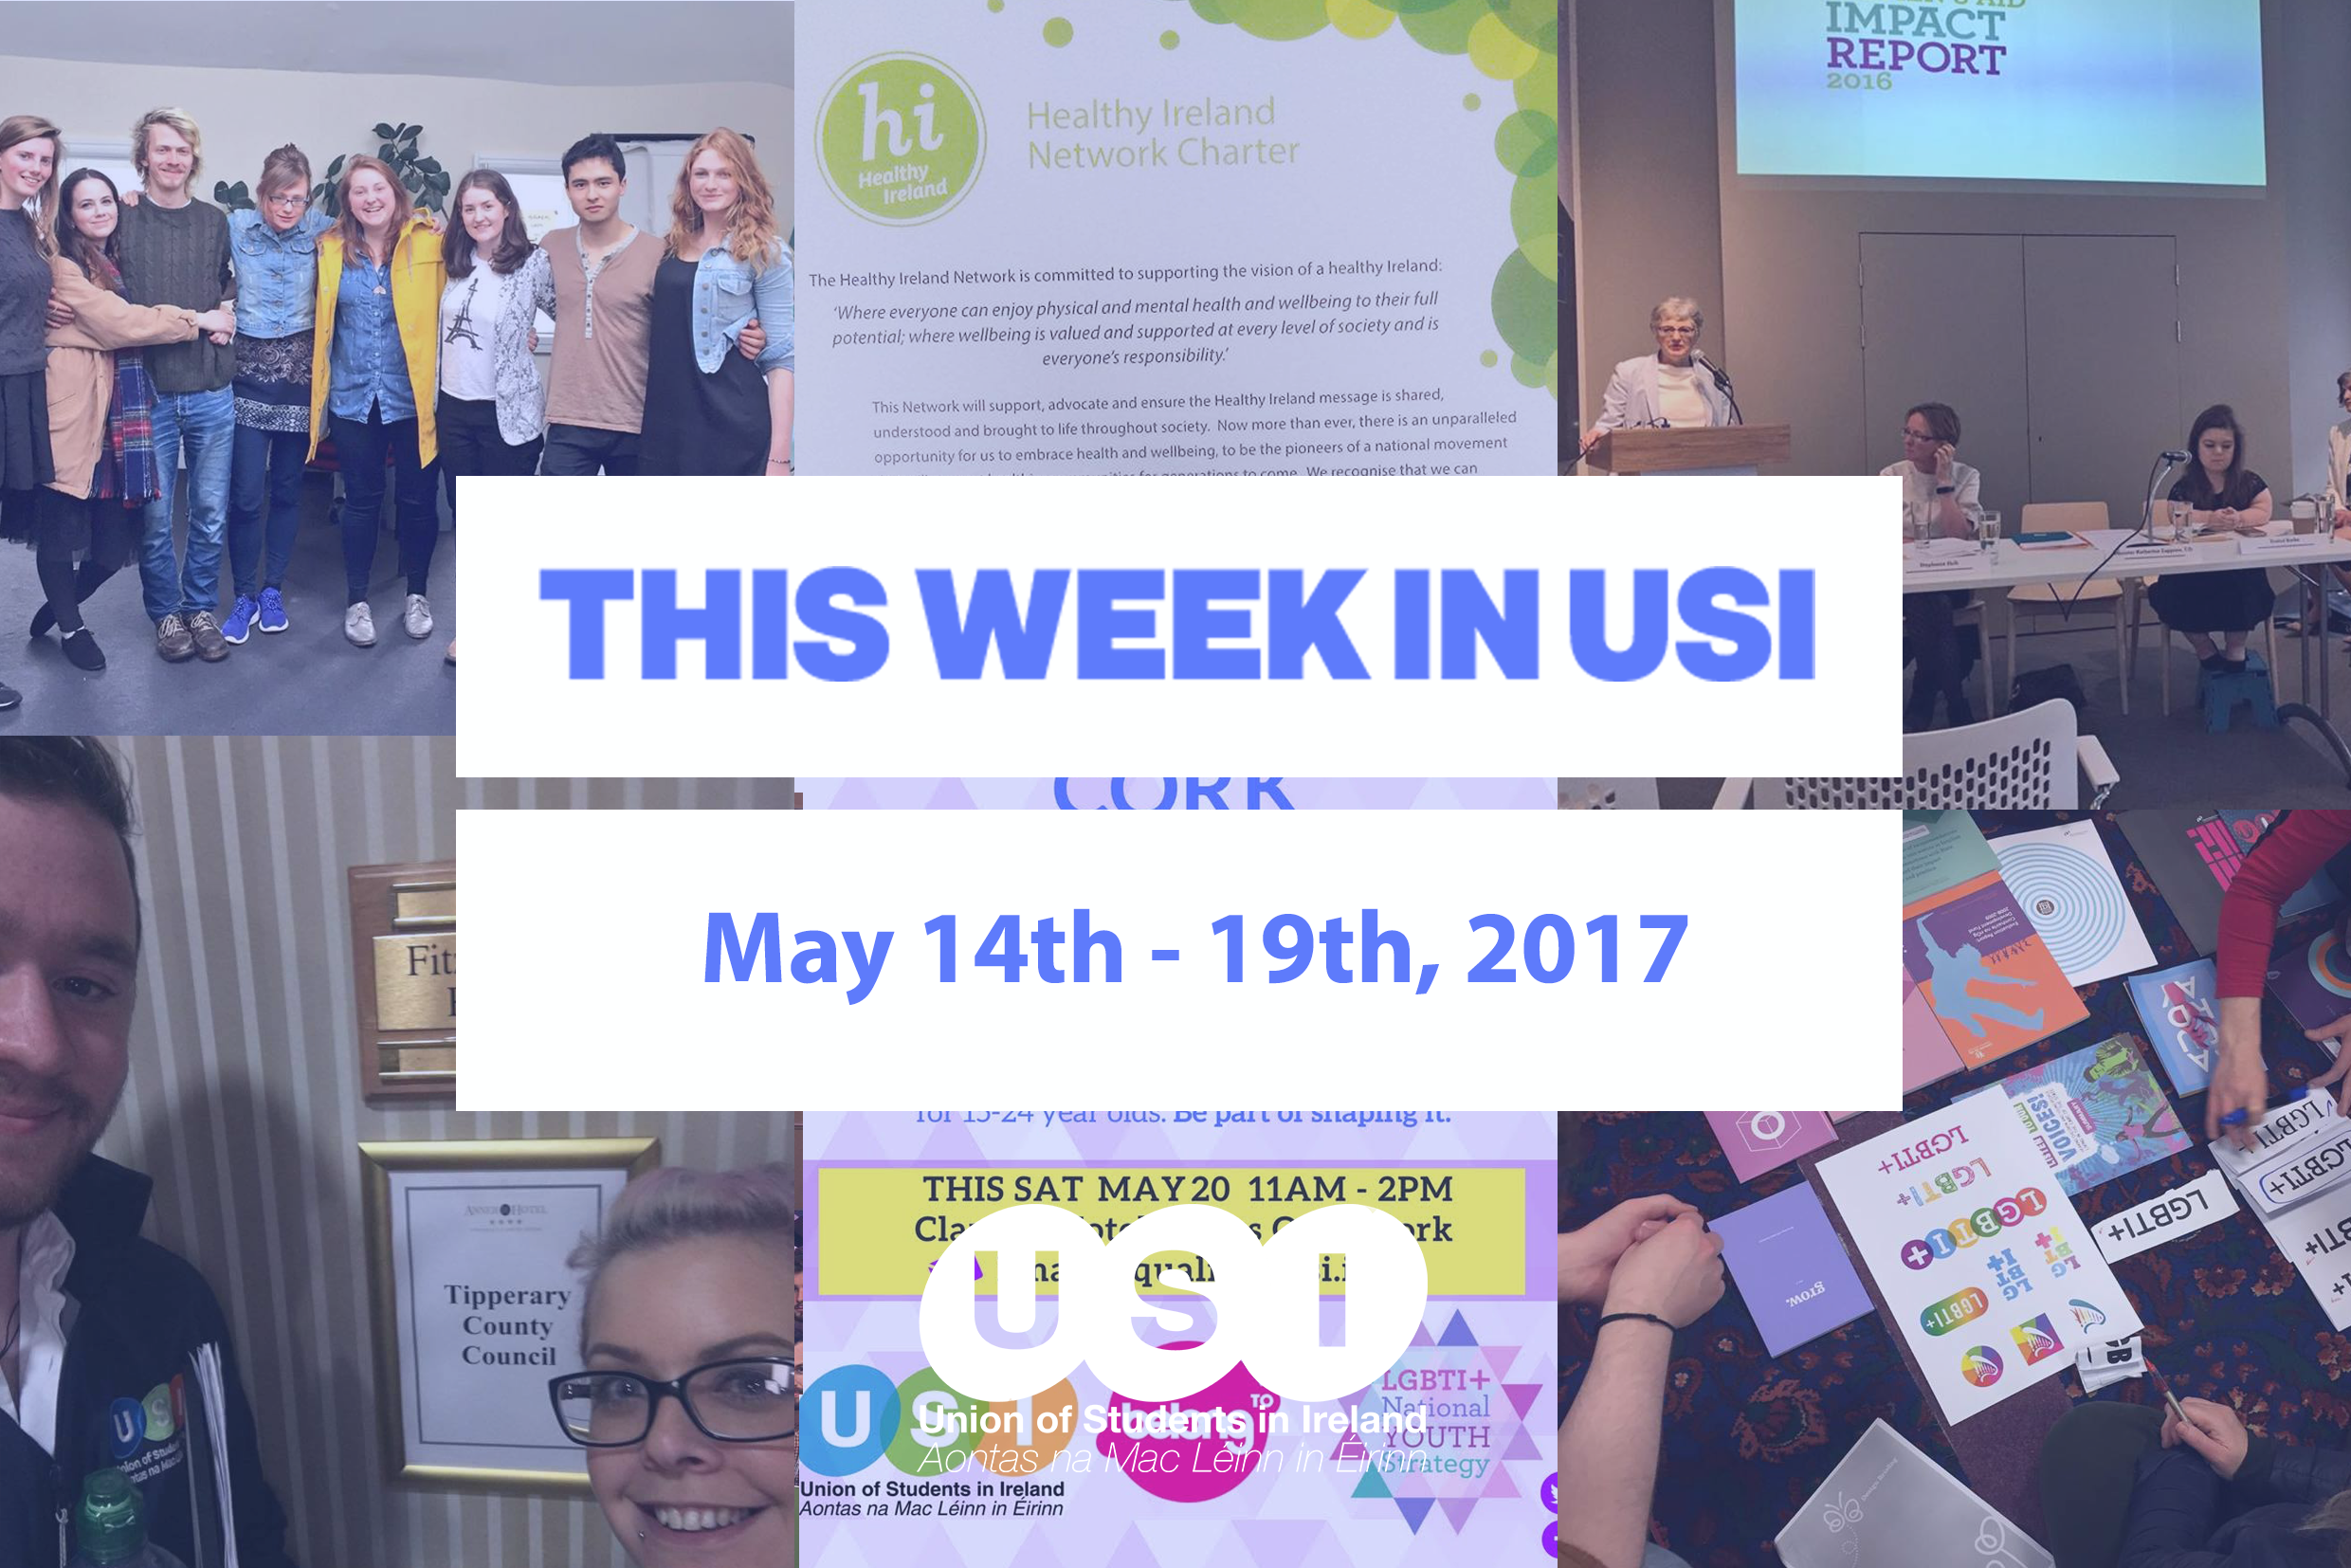 This Week in USI May 14th – 19th, 2017